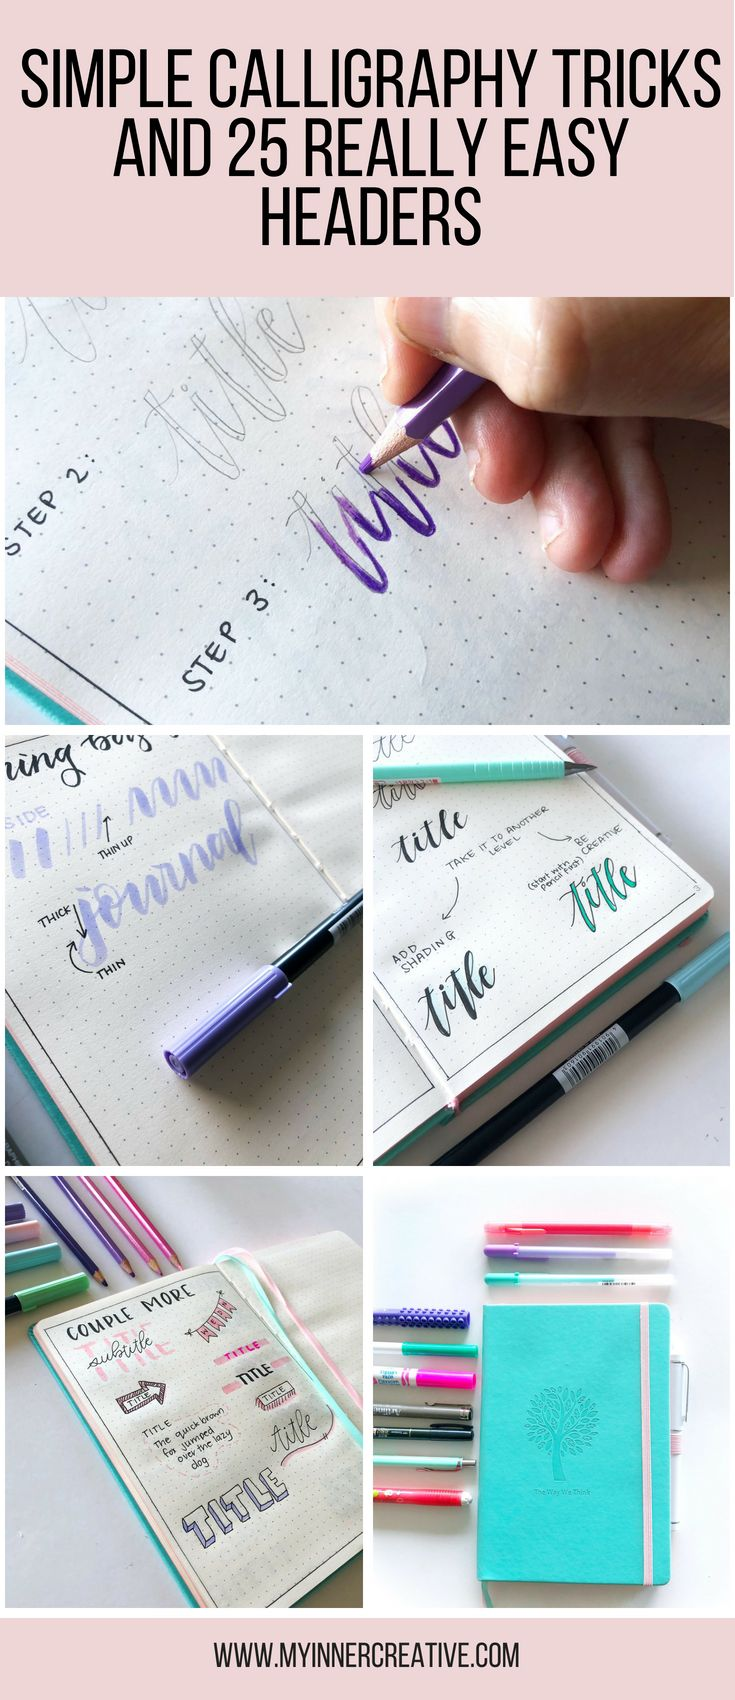 Simple Calligraphy Tricks and 25 Simple headers to get you started!